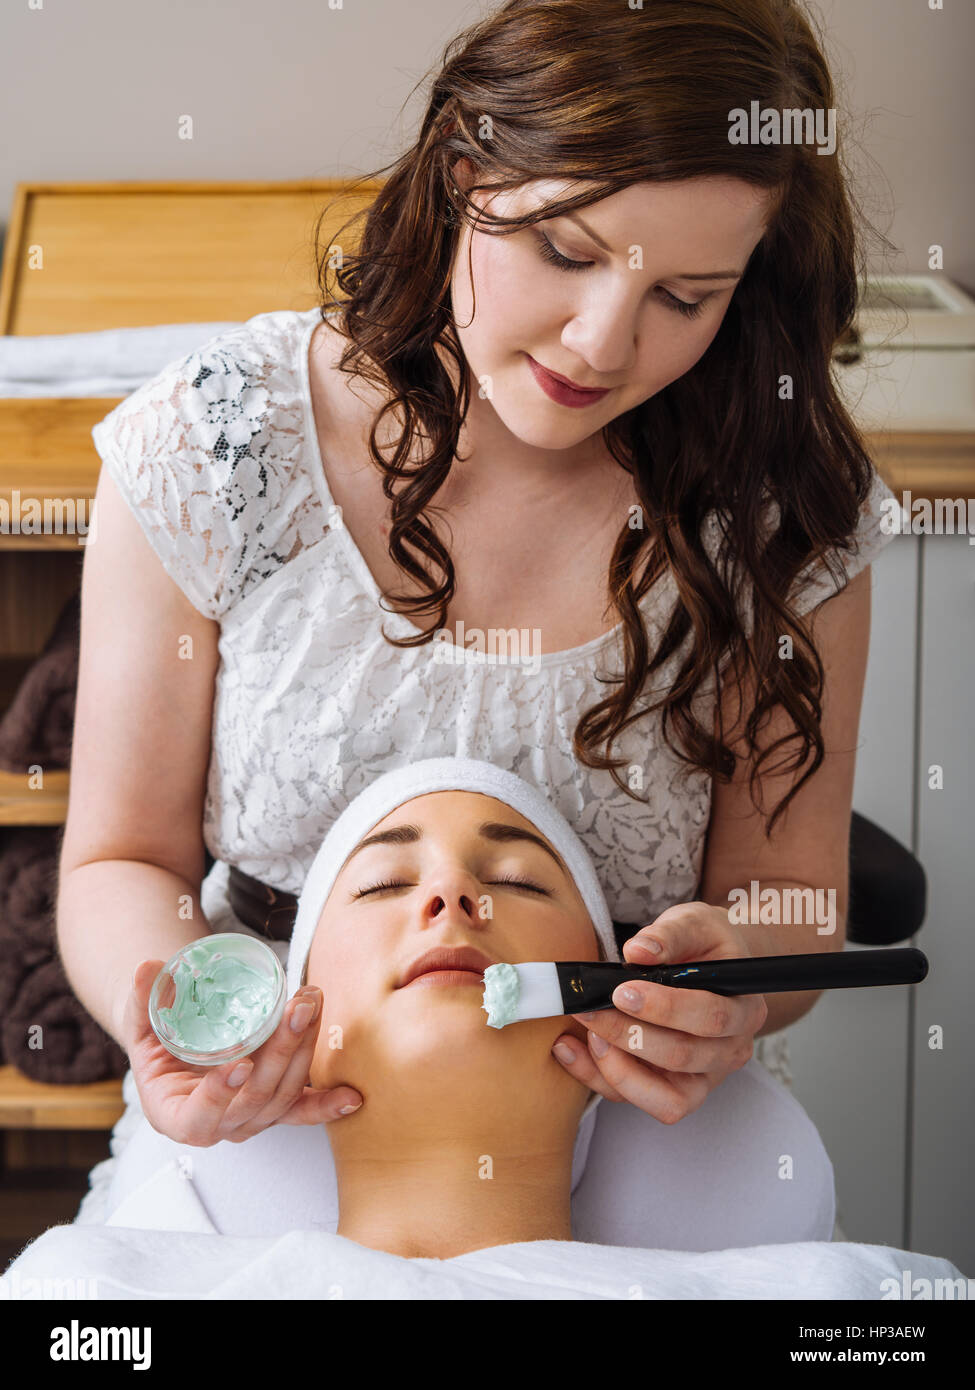 Photo of a young woman getting a facial in a salon. - Stock Image